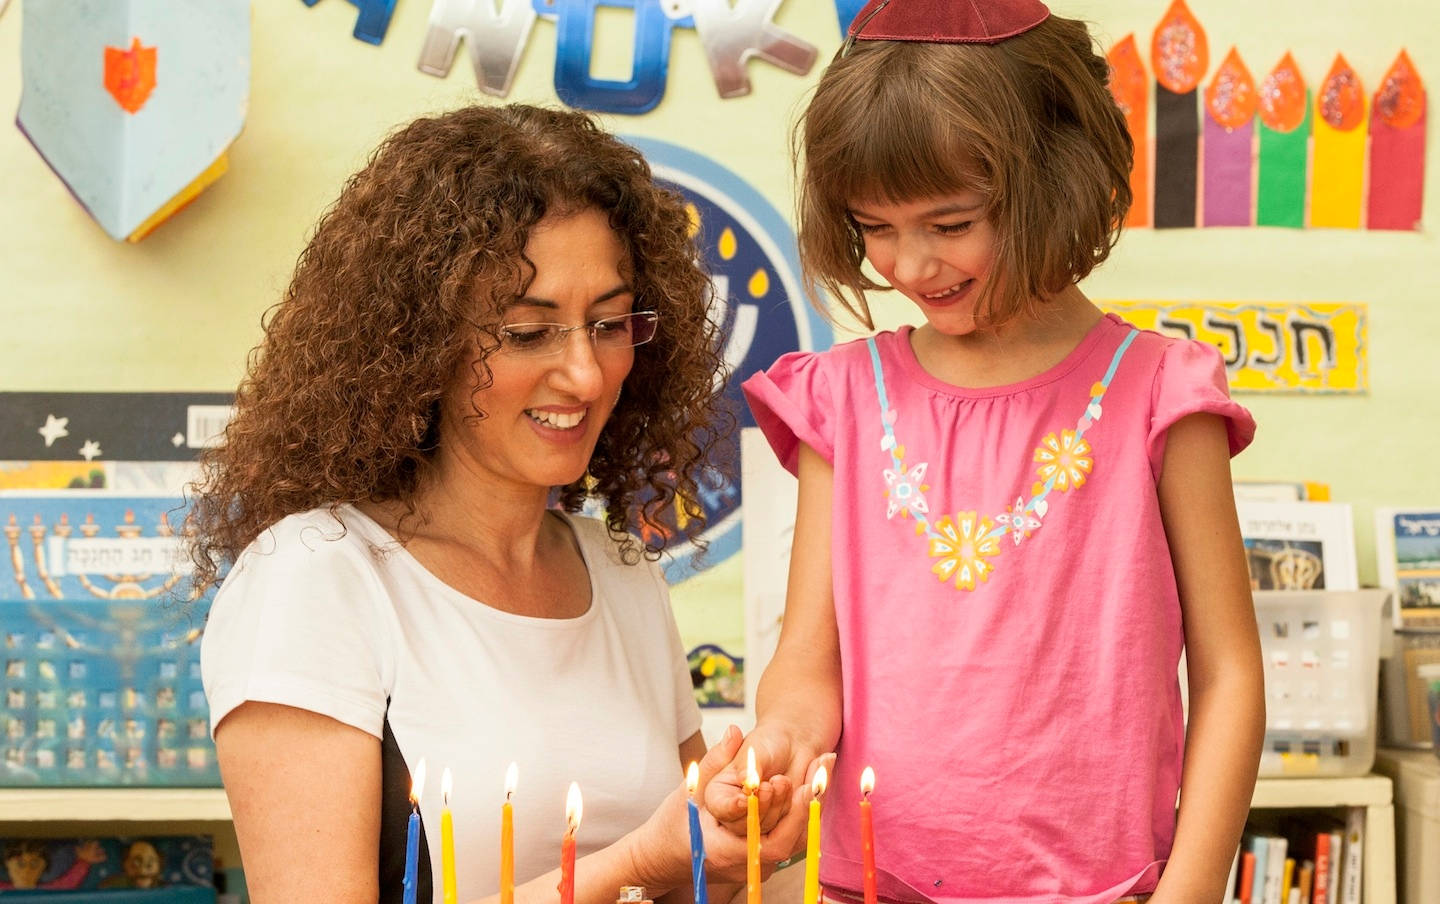 Kindergarten teacher Nirit Yakov lighting a menorah with a student at Tehiyah Day School in California.  (Courtesy of Tehiyah Day School)